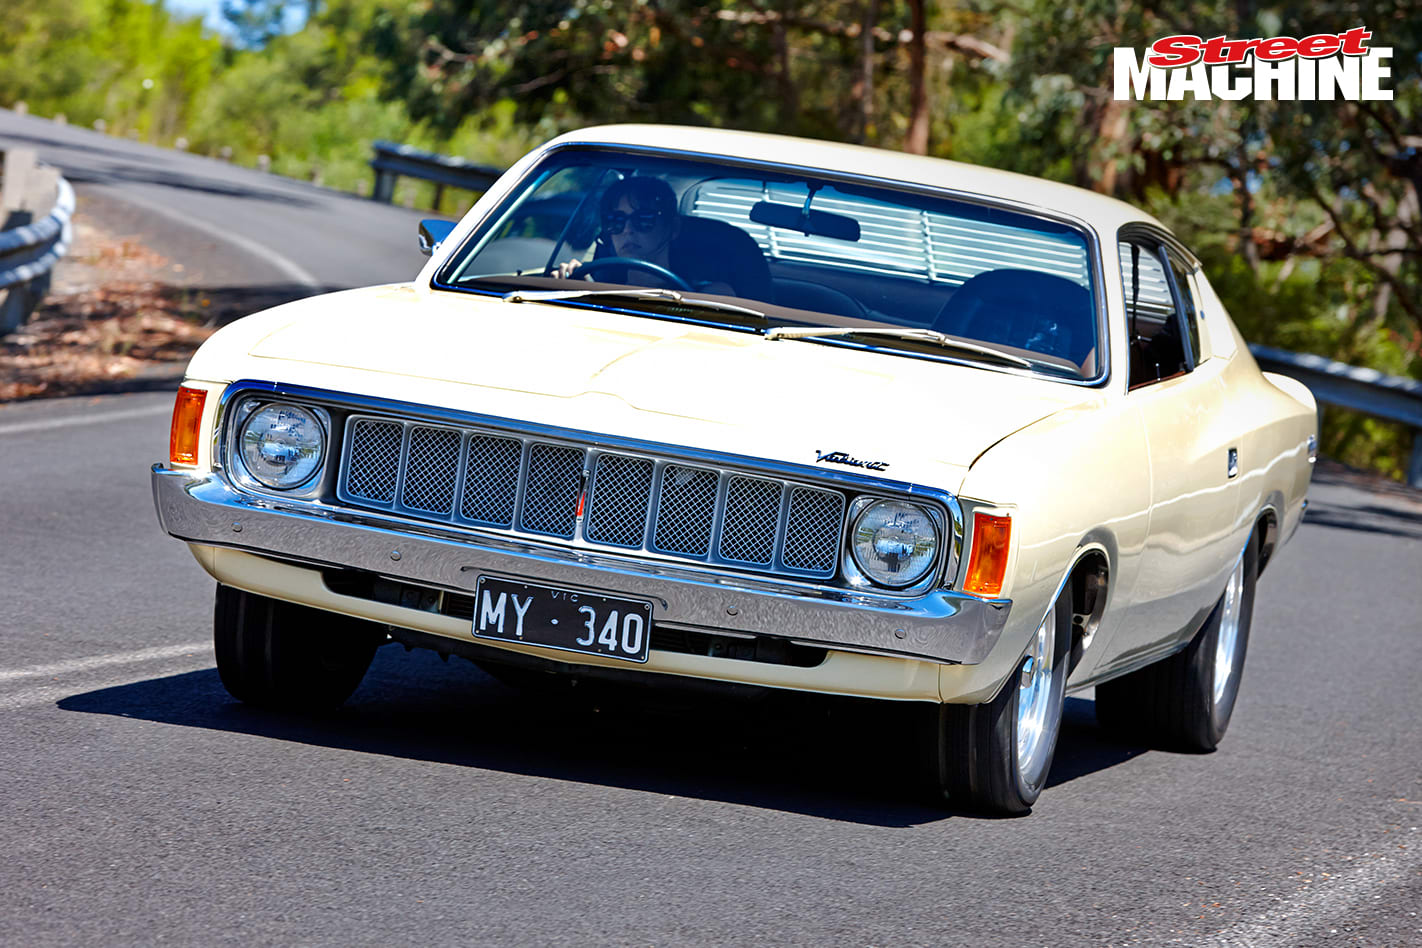 VJ Valiant Charger 8 Nw